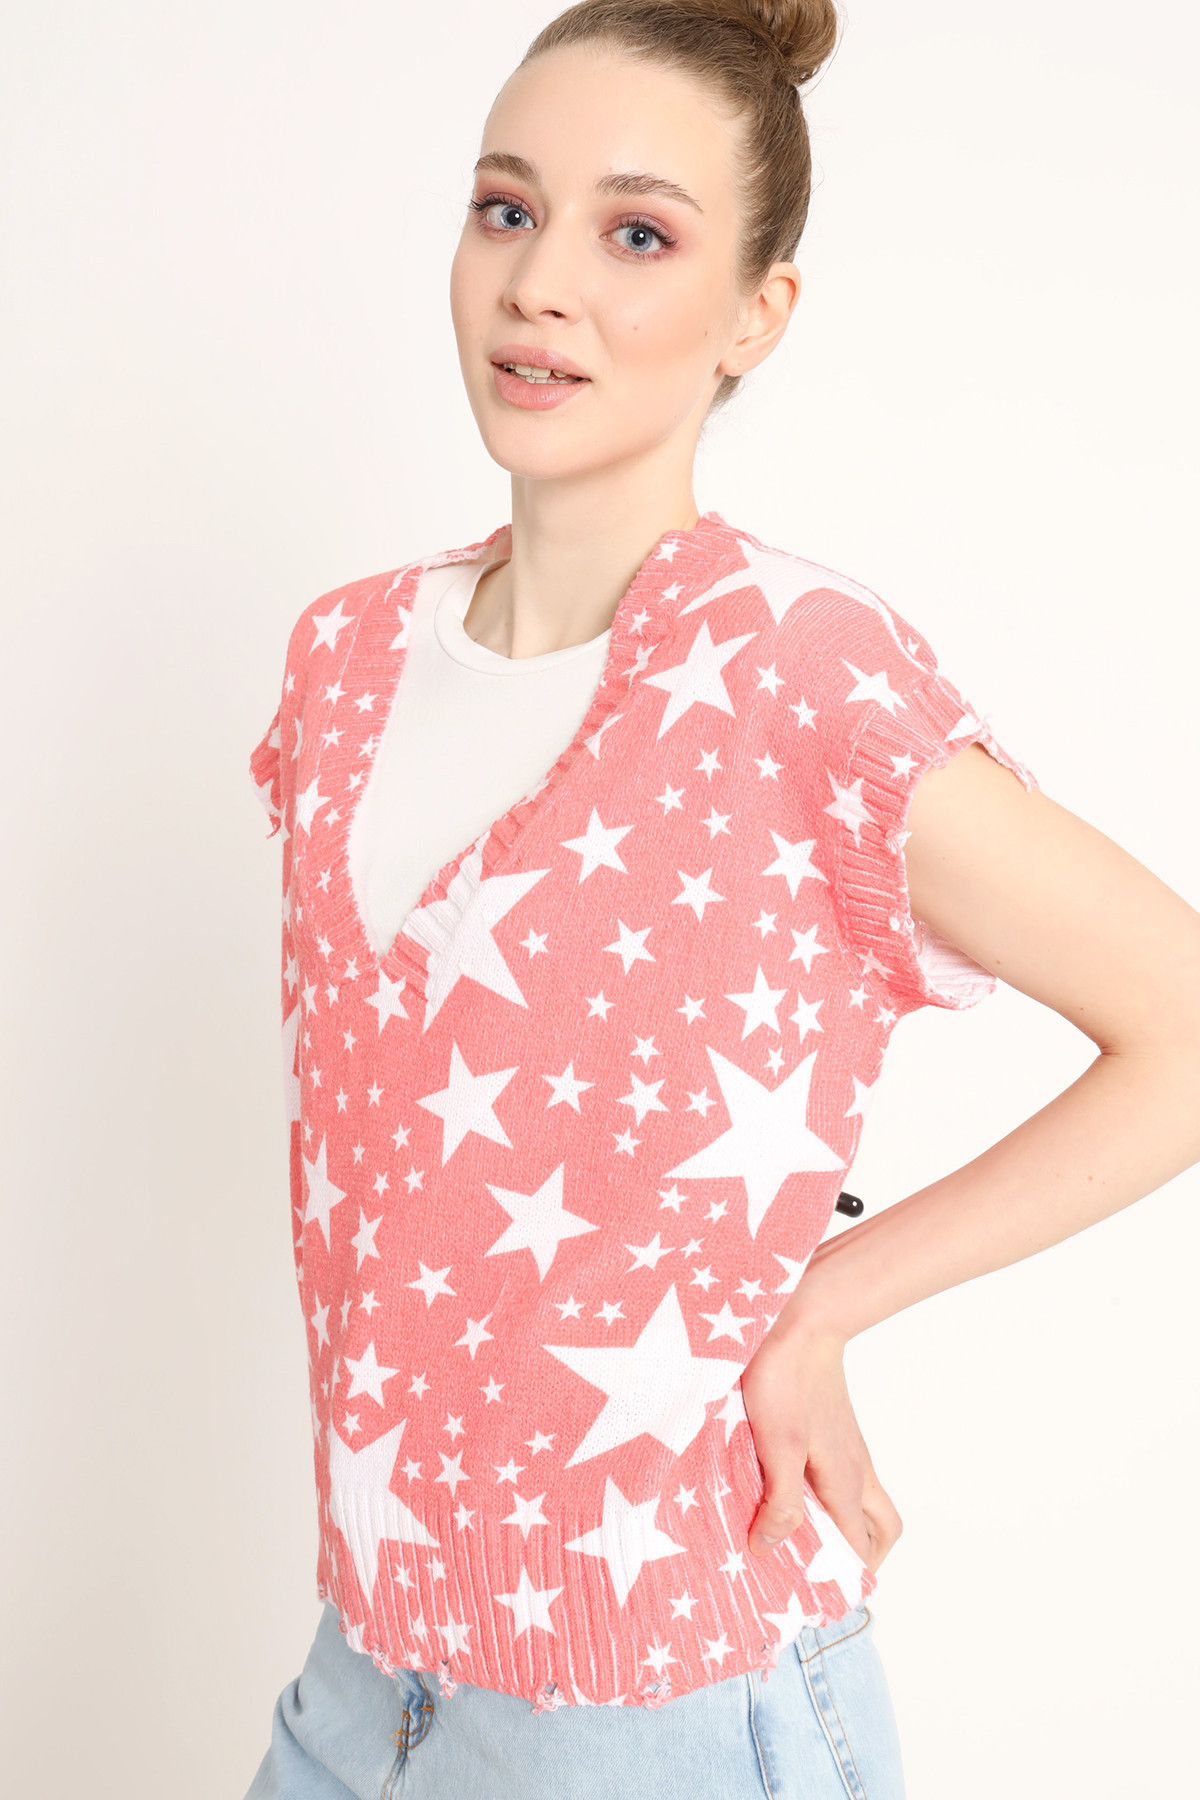 Knitted Vest With Stars